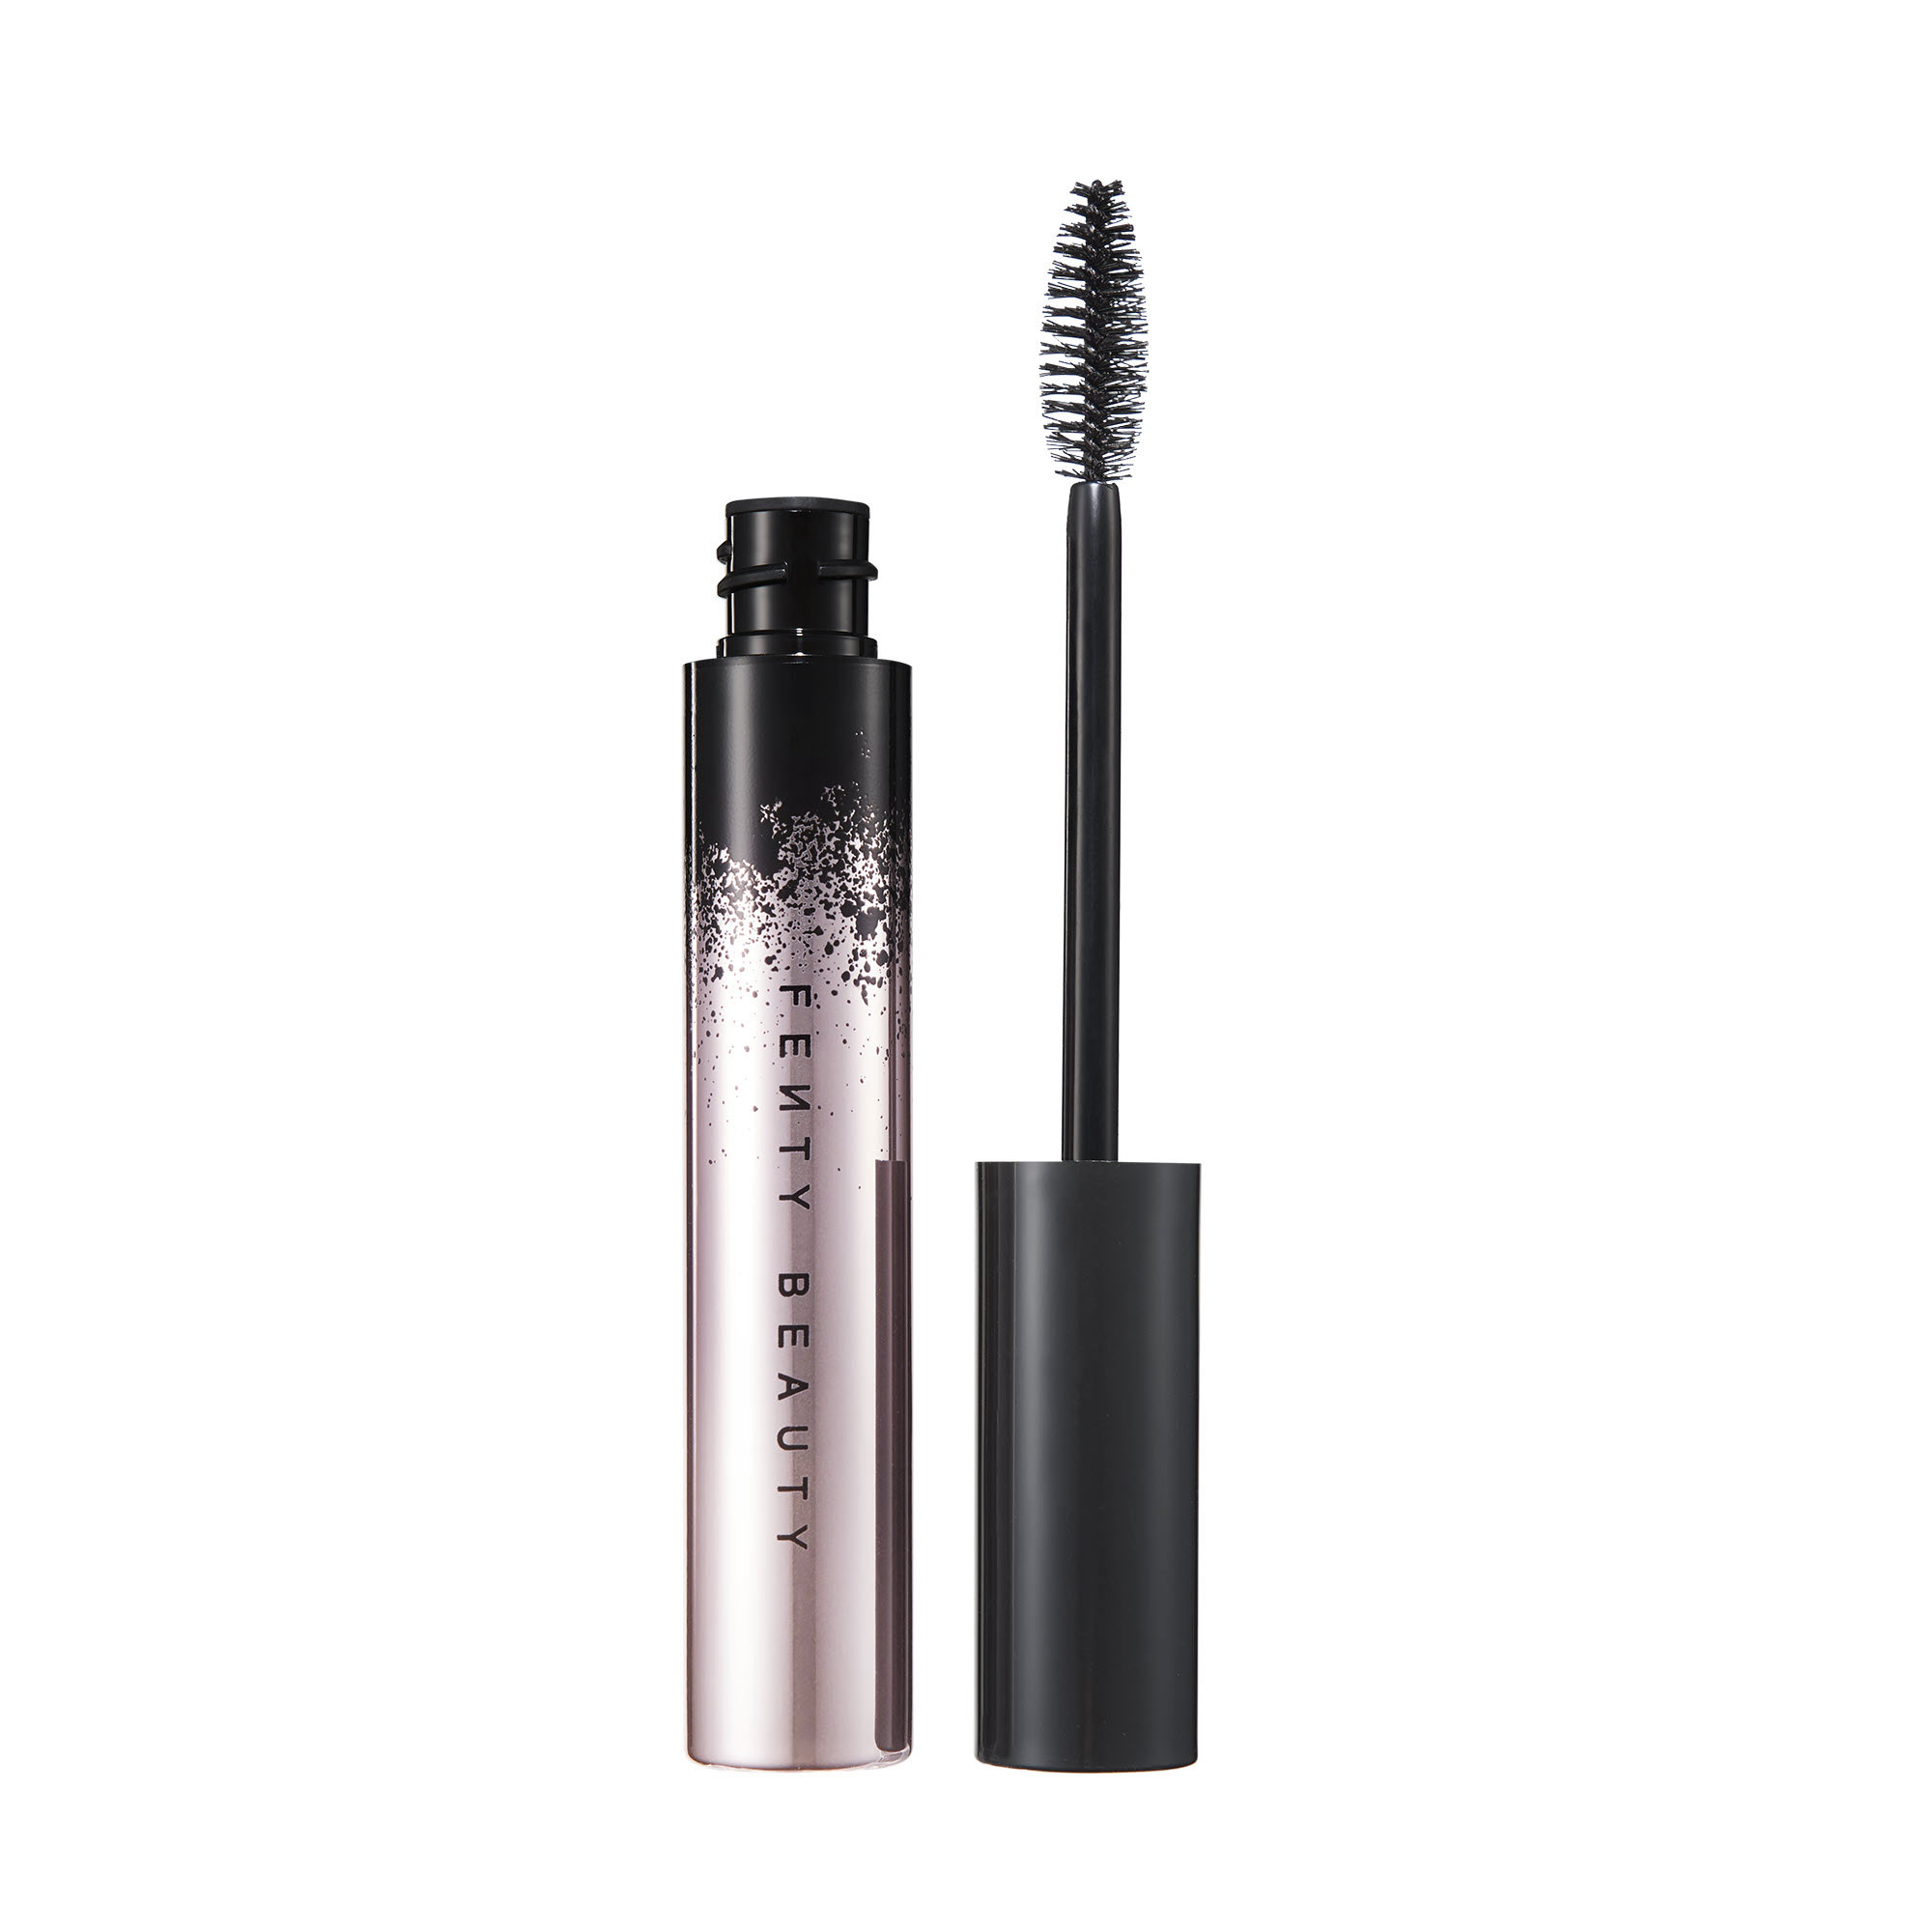 Fenty Beauty By Rihanna Full Frontal Volume, Lift & Curl Mascara